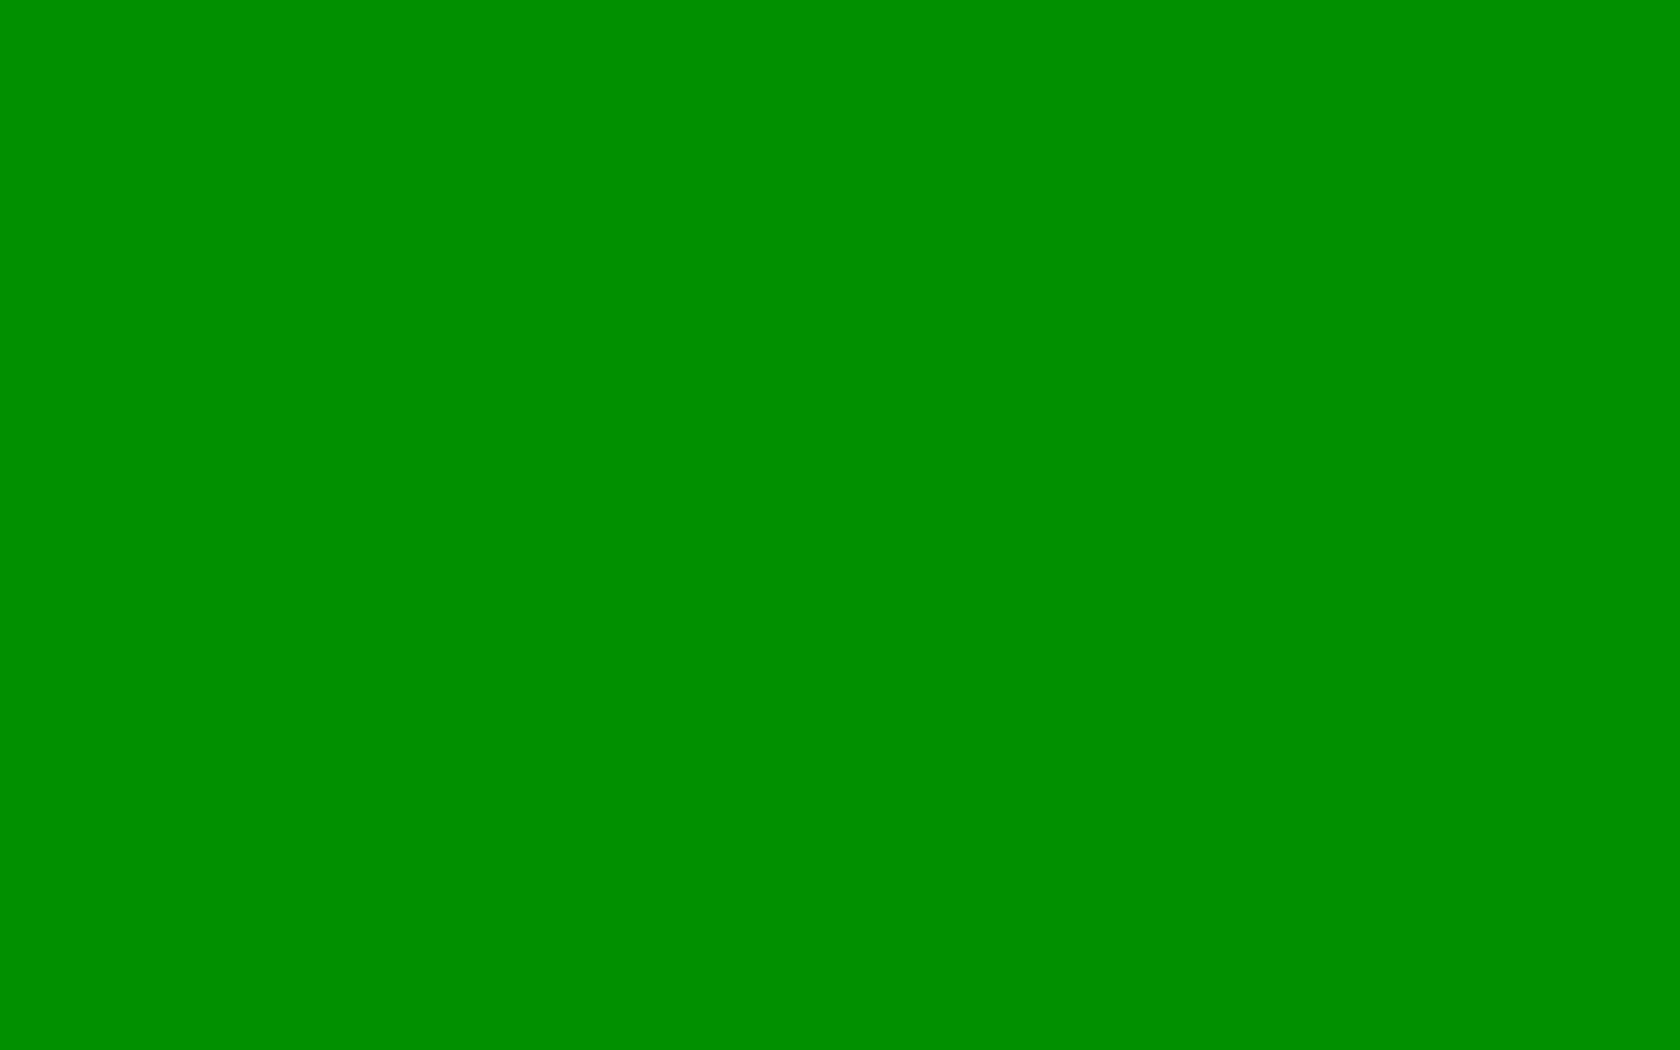 1680x1050 Islamic Green Solid Color Background